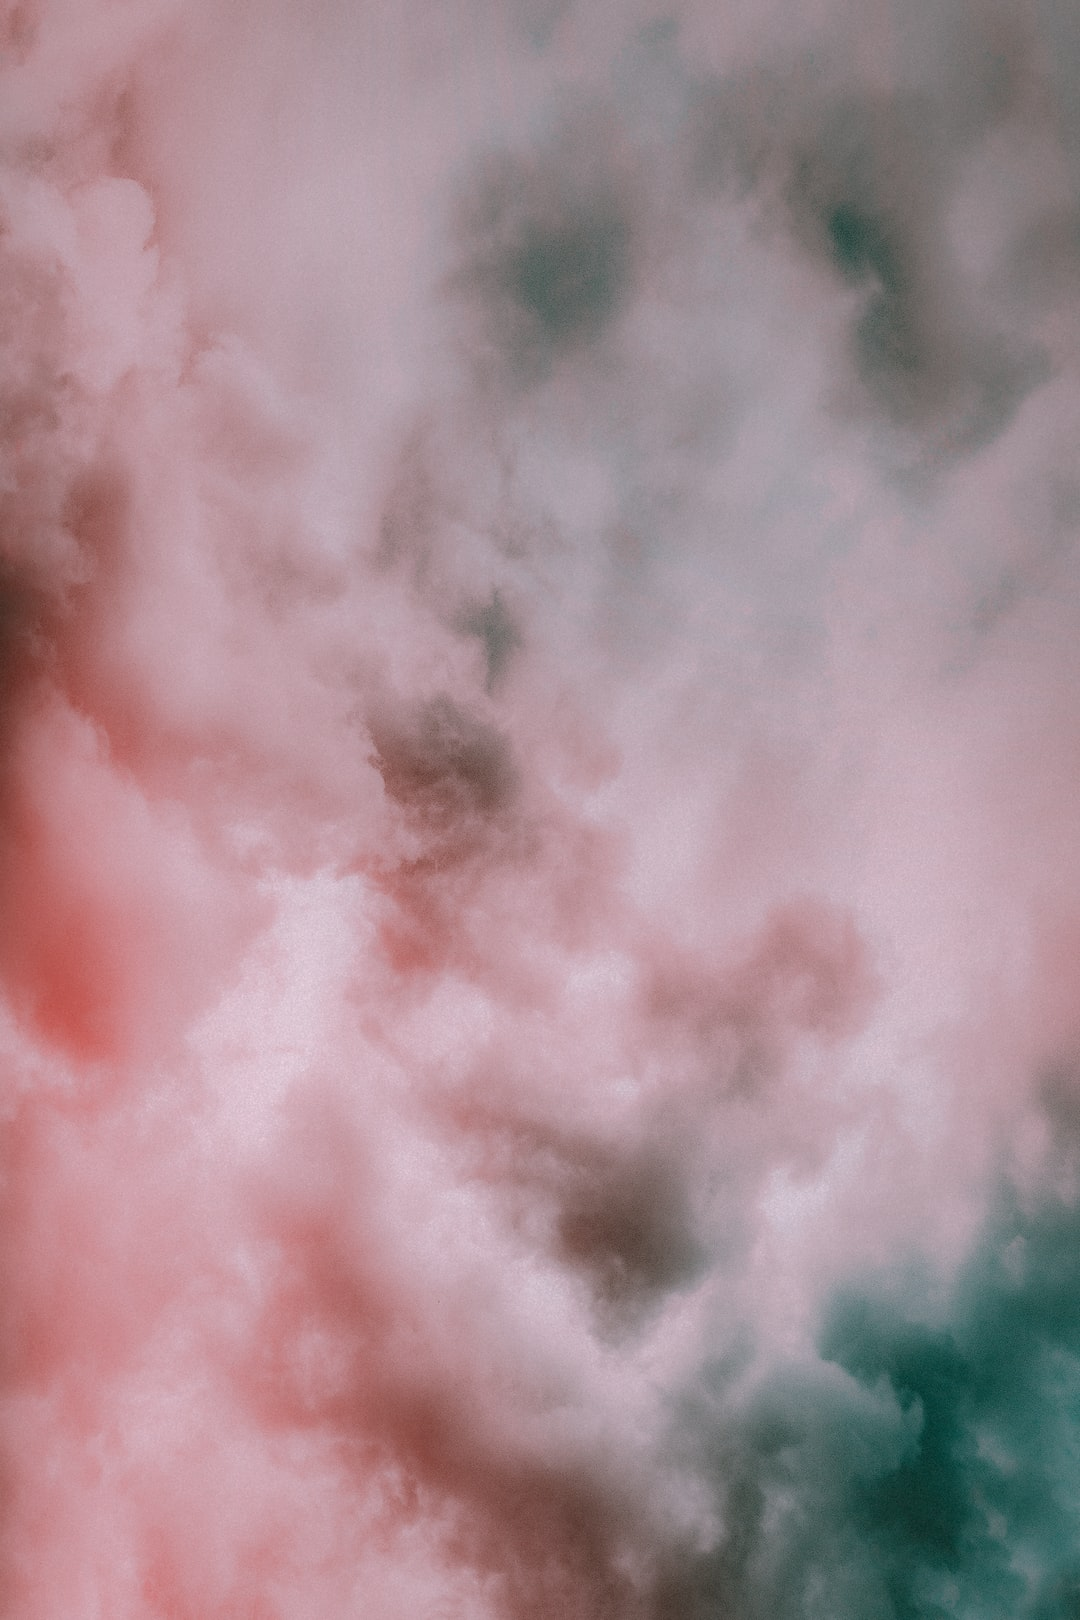 20+ Smoke Images [HD]   Download Free Pictures on Unsplash